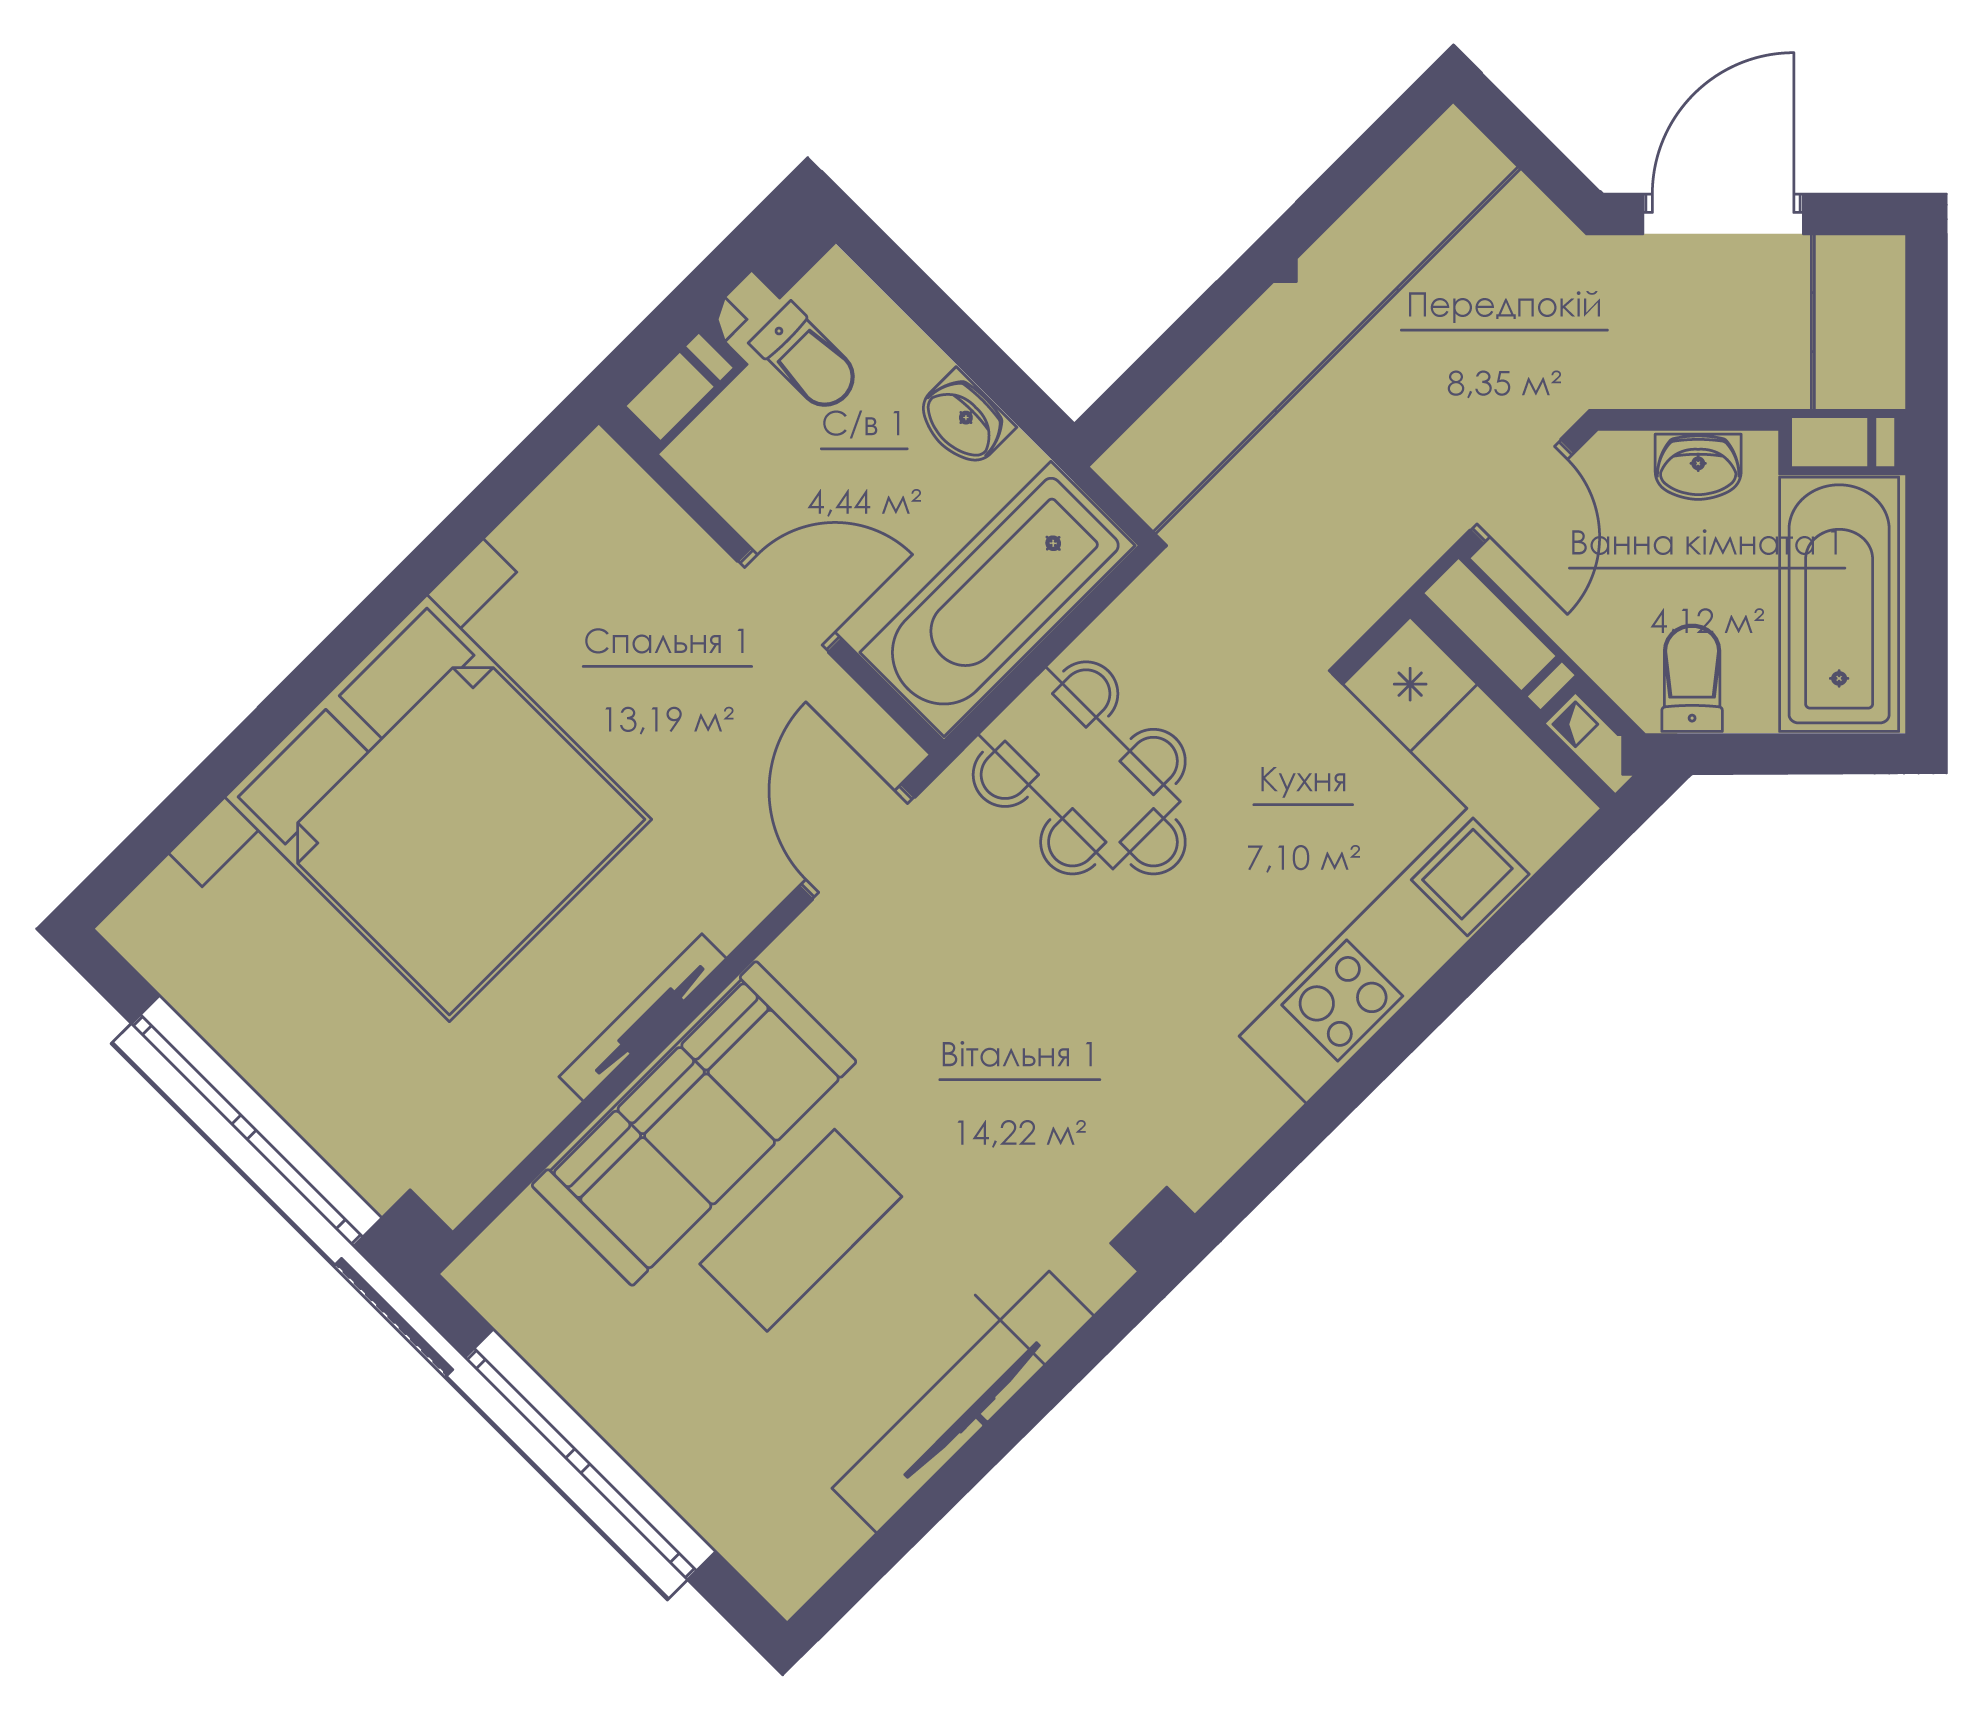 Apartment layout KV_104_2m_1_1_3-1